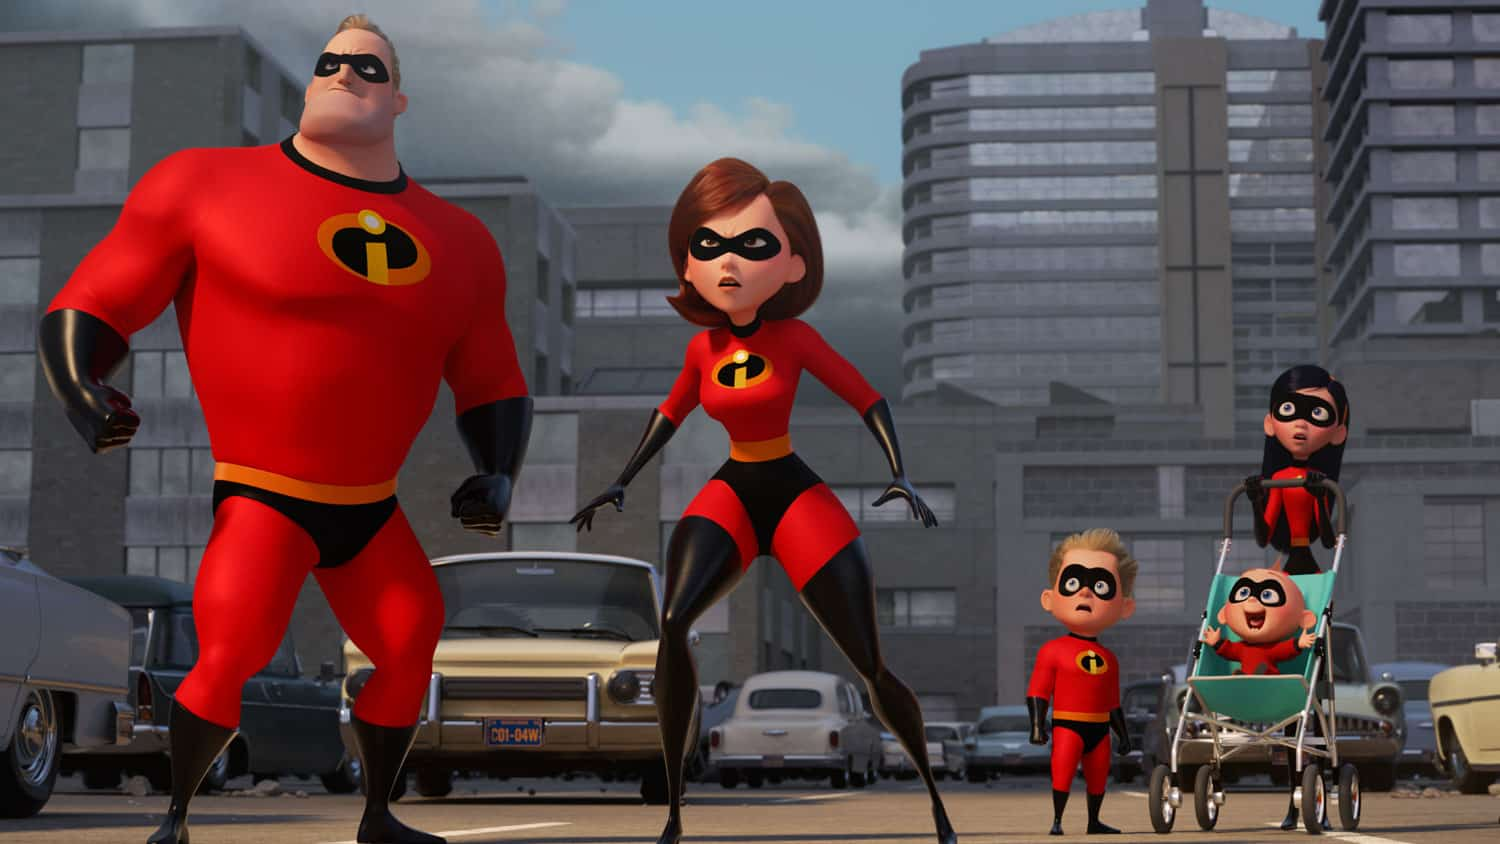 Incredibles 2 Review – The Family Is Back, Super - OC Movie Reviews - Movie Reviews, Movie News, Documentary Reviews, Short Films, Short Film Reviews, Trailers, Movie Trailers, Interviews, film reviews, film news, hollywood, indie films, documentaries